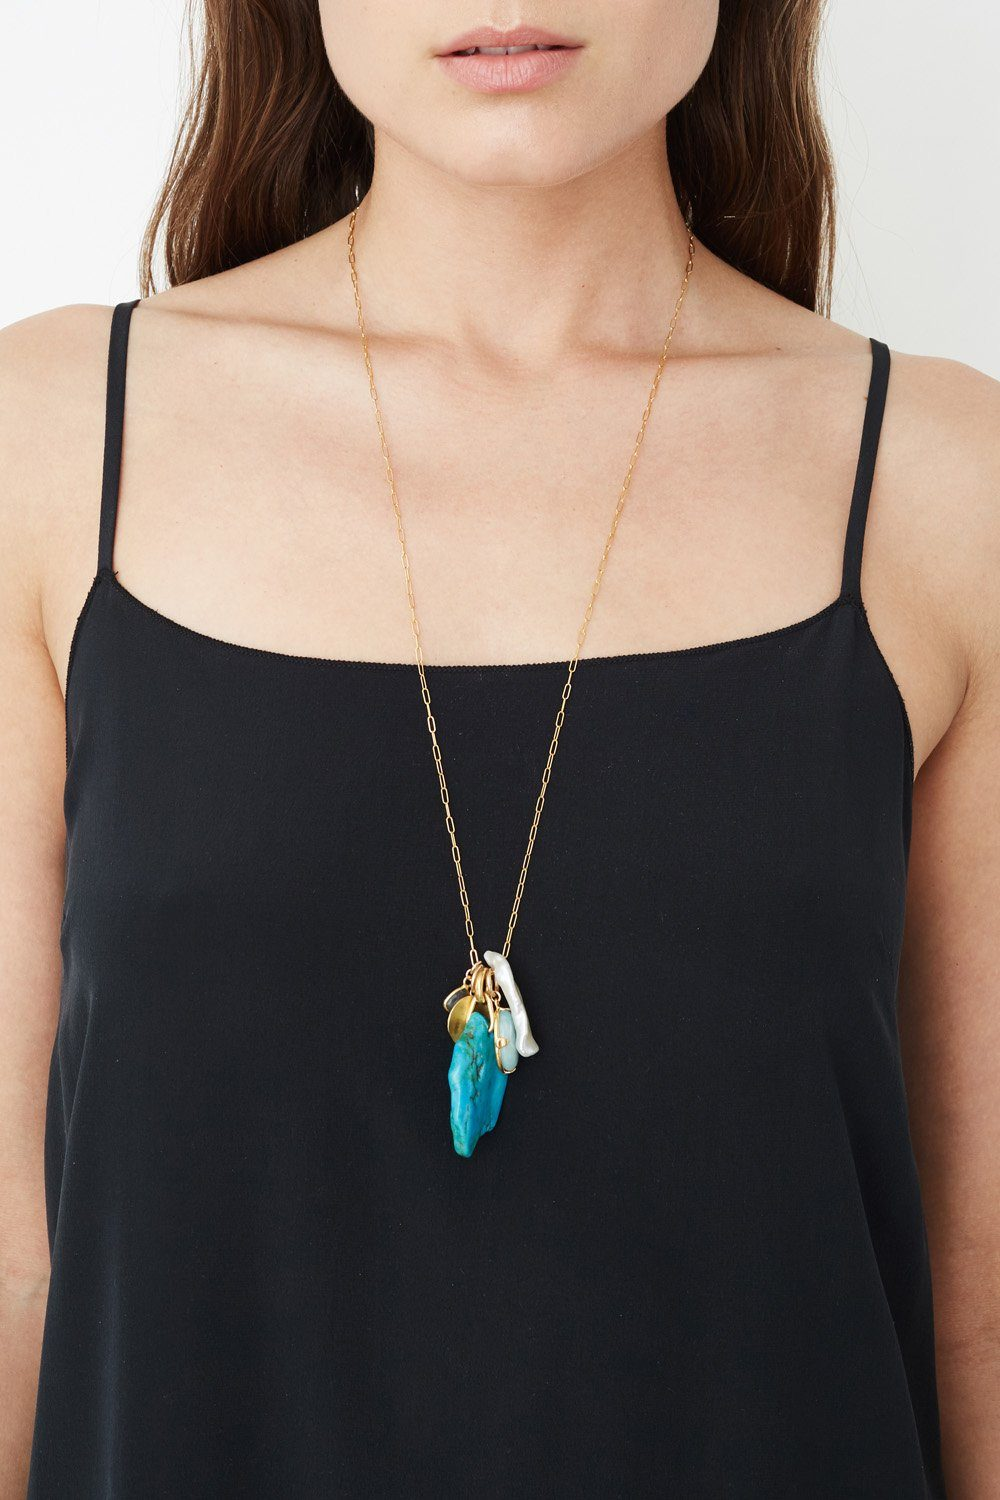 Turquoise Mix Charm Necklace